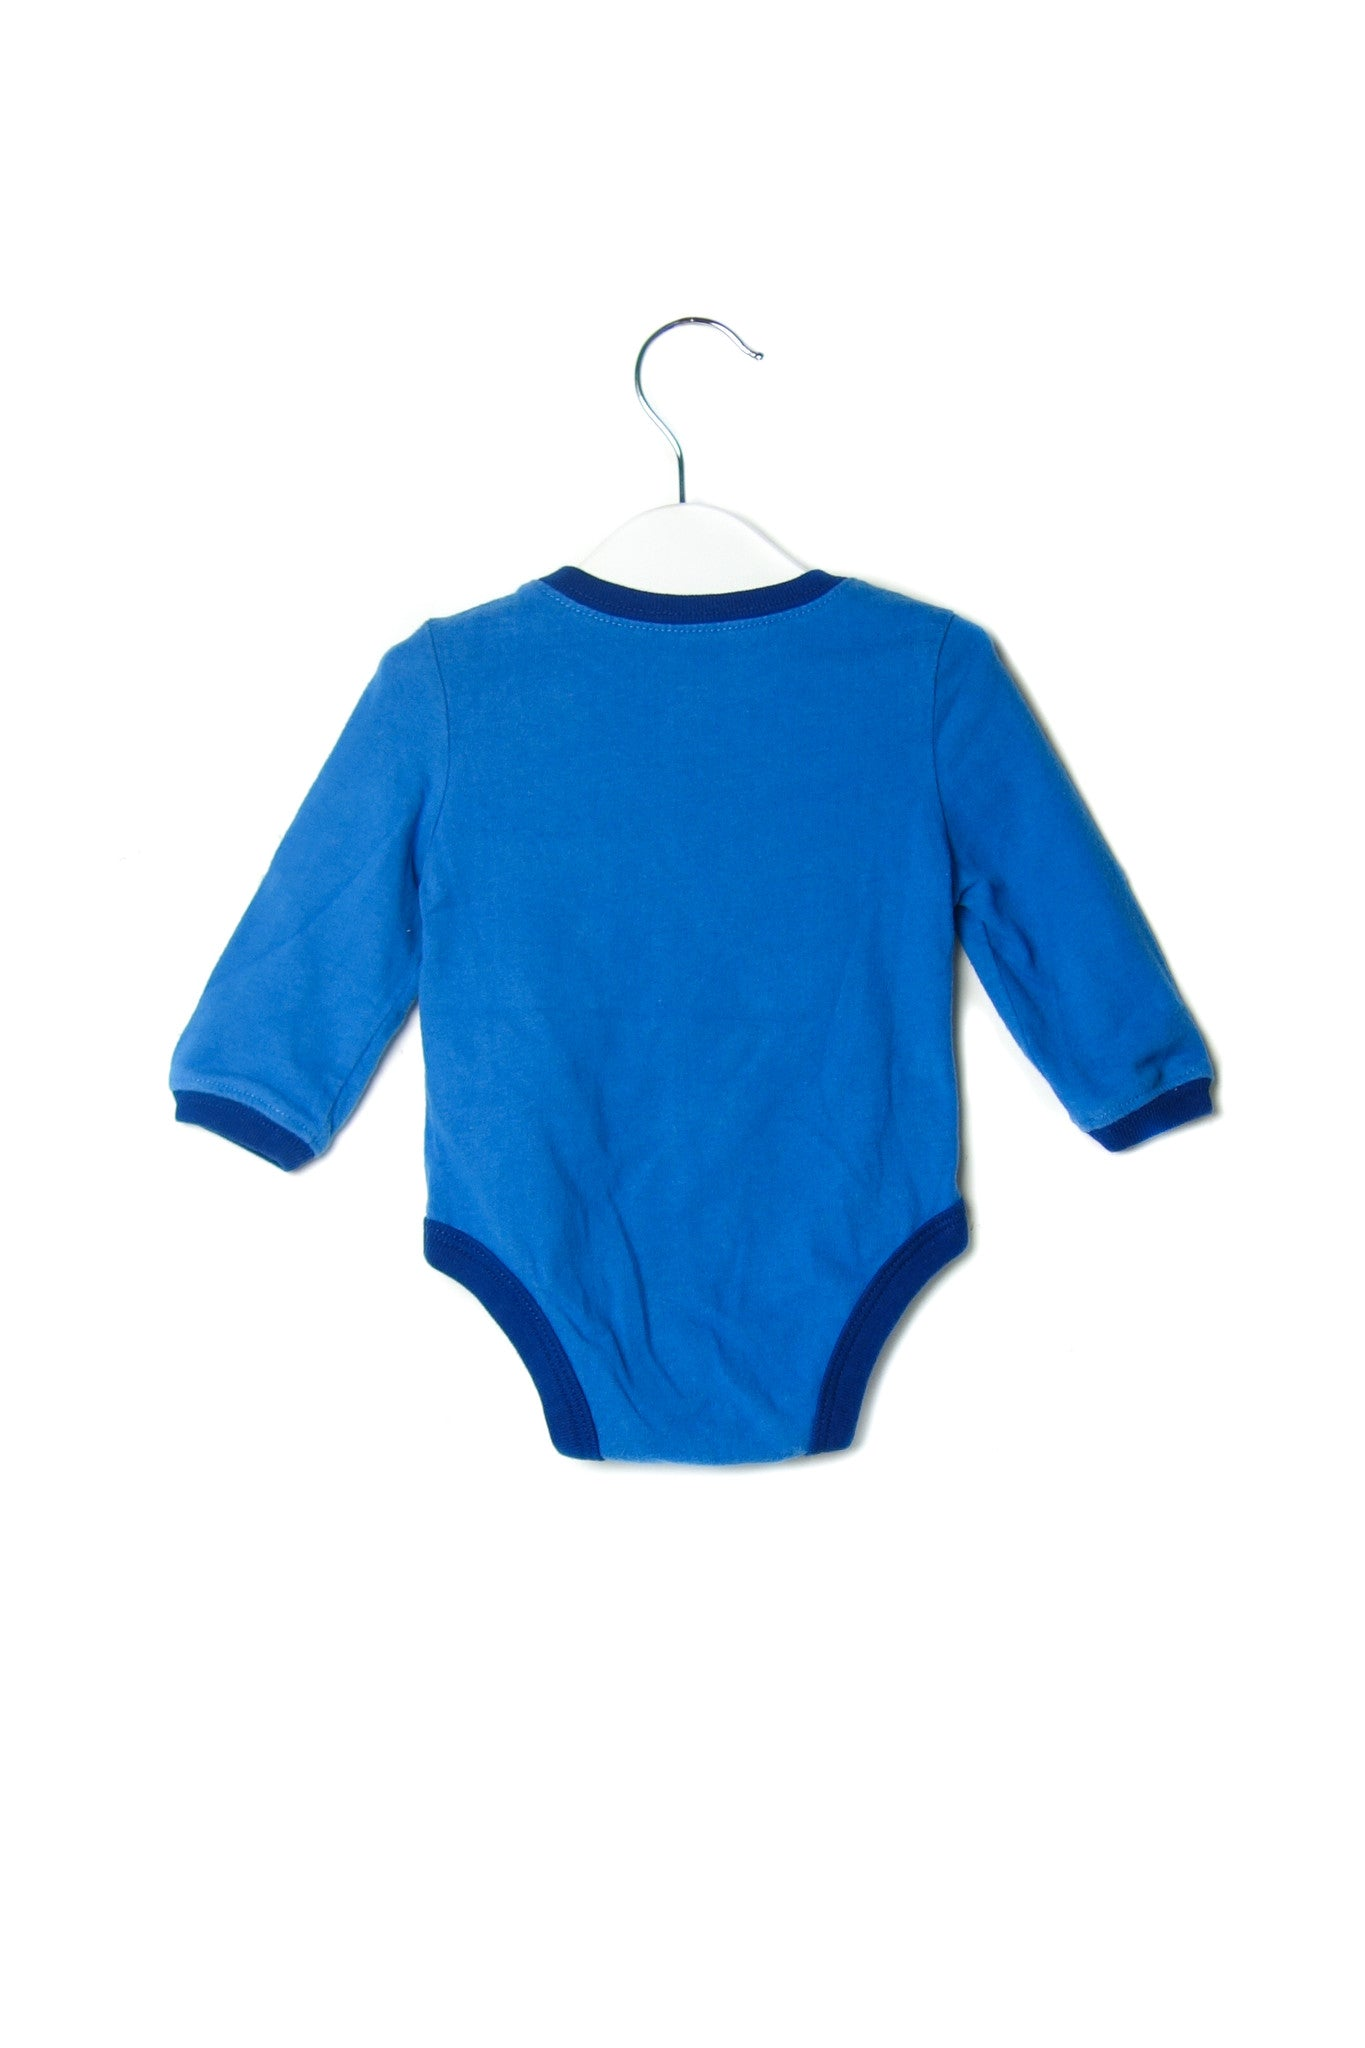 10002010 Roots Baby~Bodysuit 3-6M at Retykle